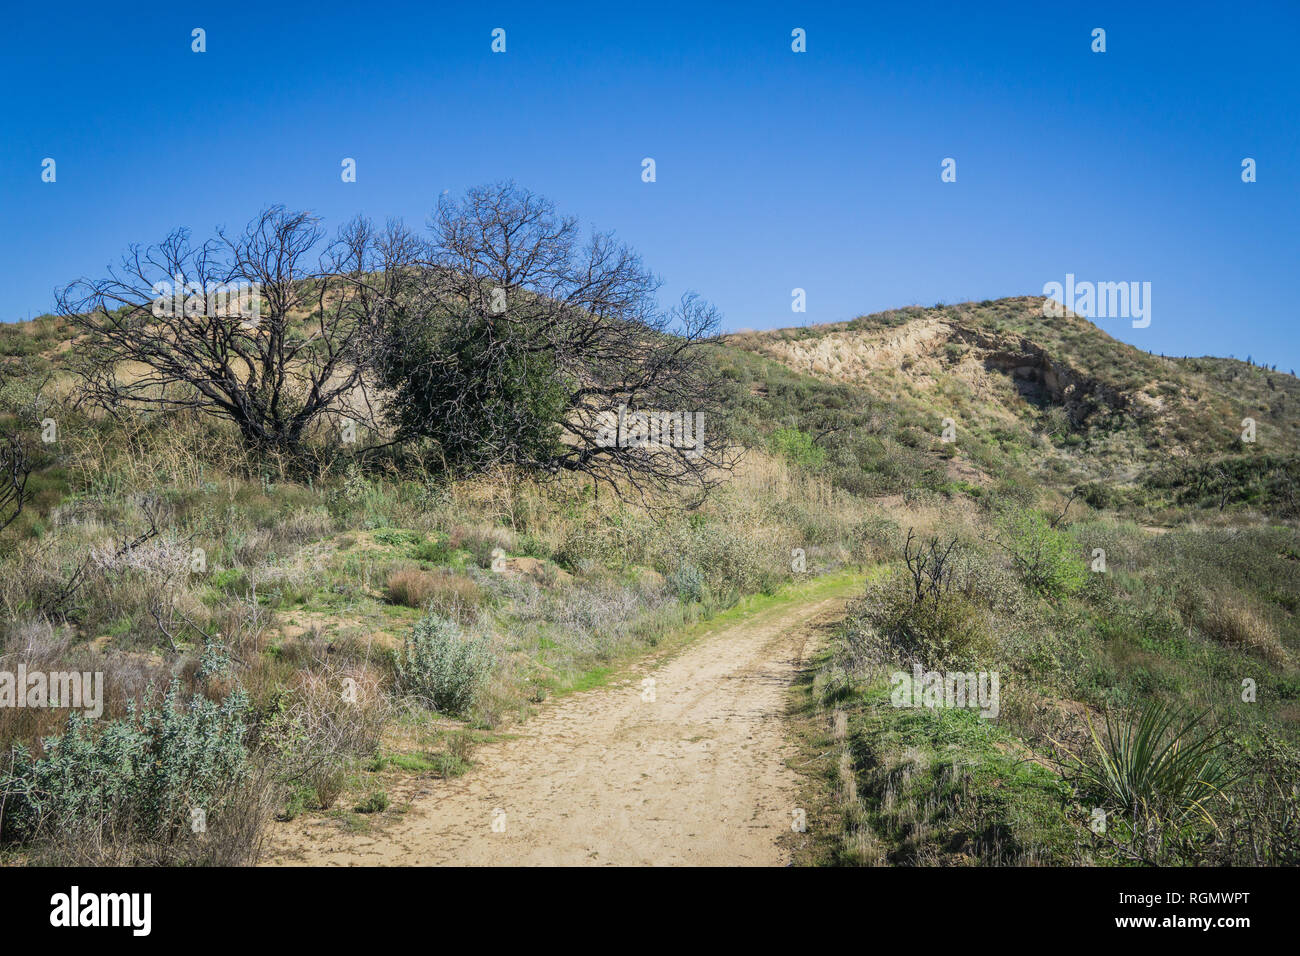 Dirt riding offroad trail into the desert hills on the edge of LA County. - Stock Image